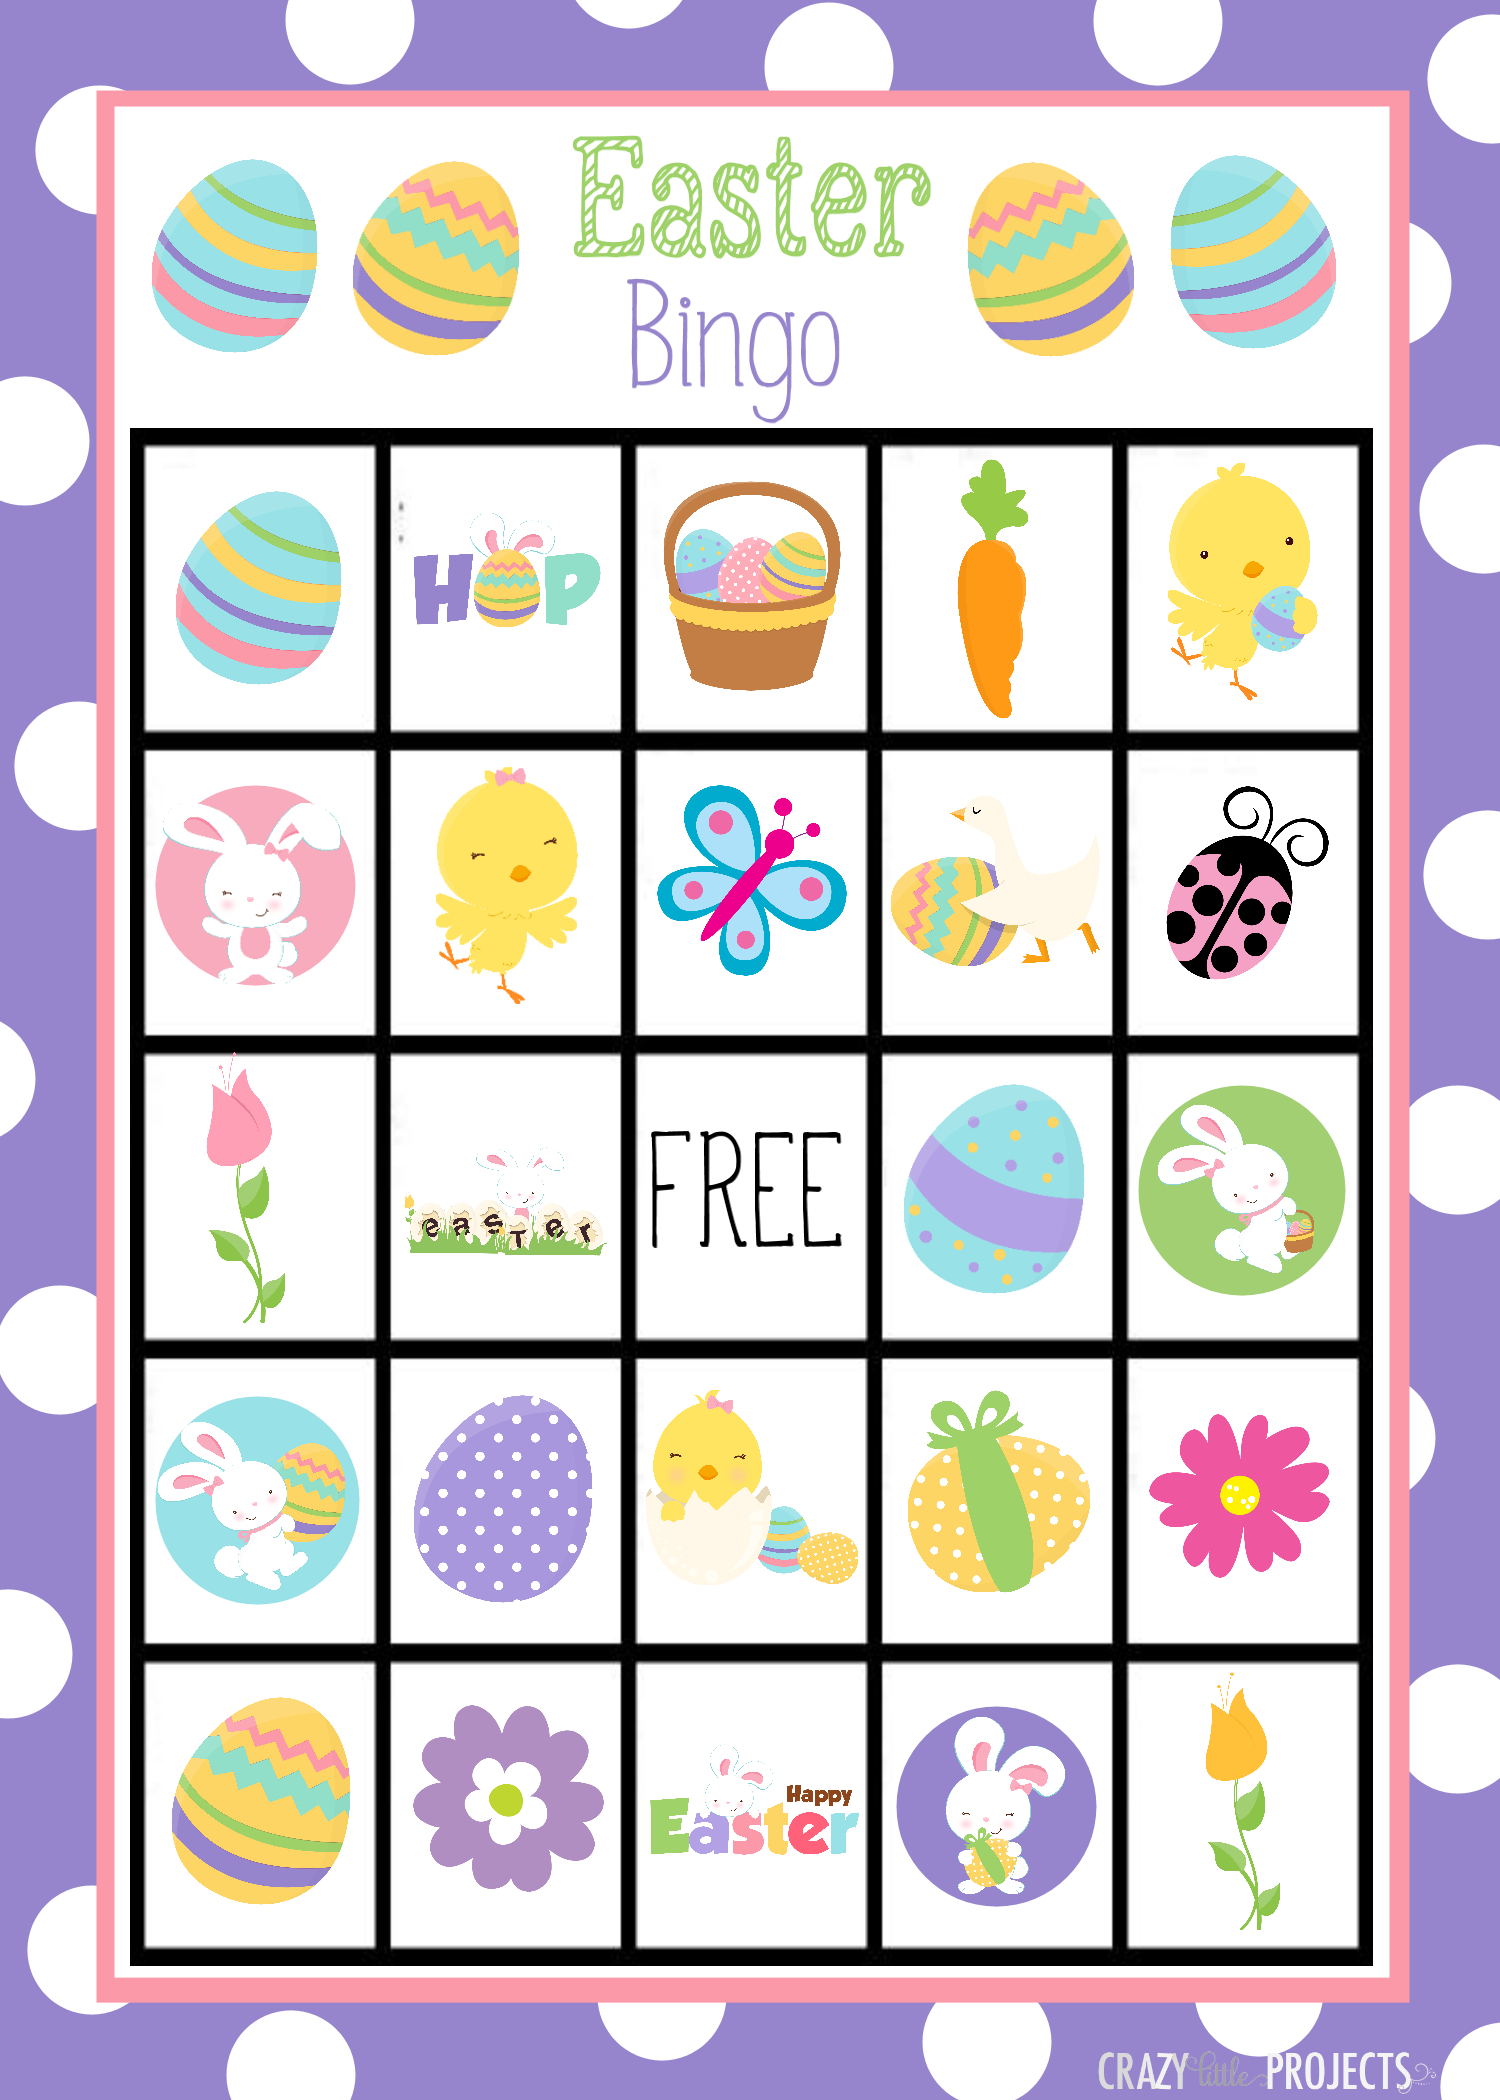 Easter Games For Adults Printable Free – Happy Easter & Thanksgiving - Easter Games For Adults Printable Free